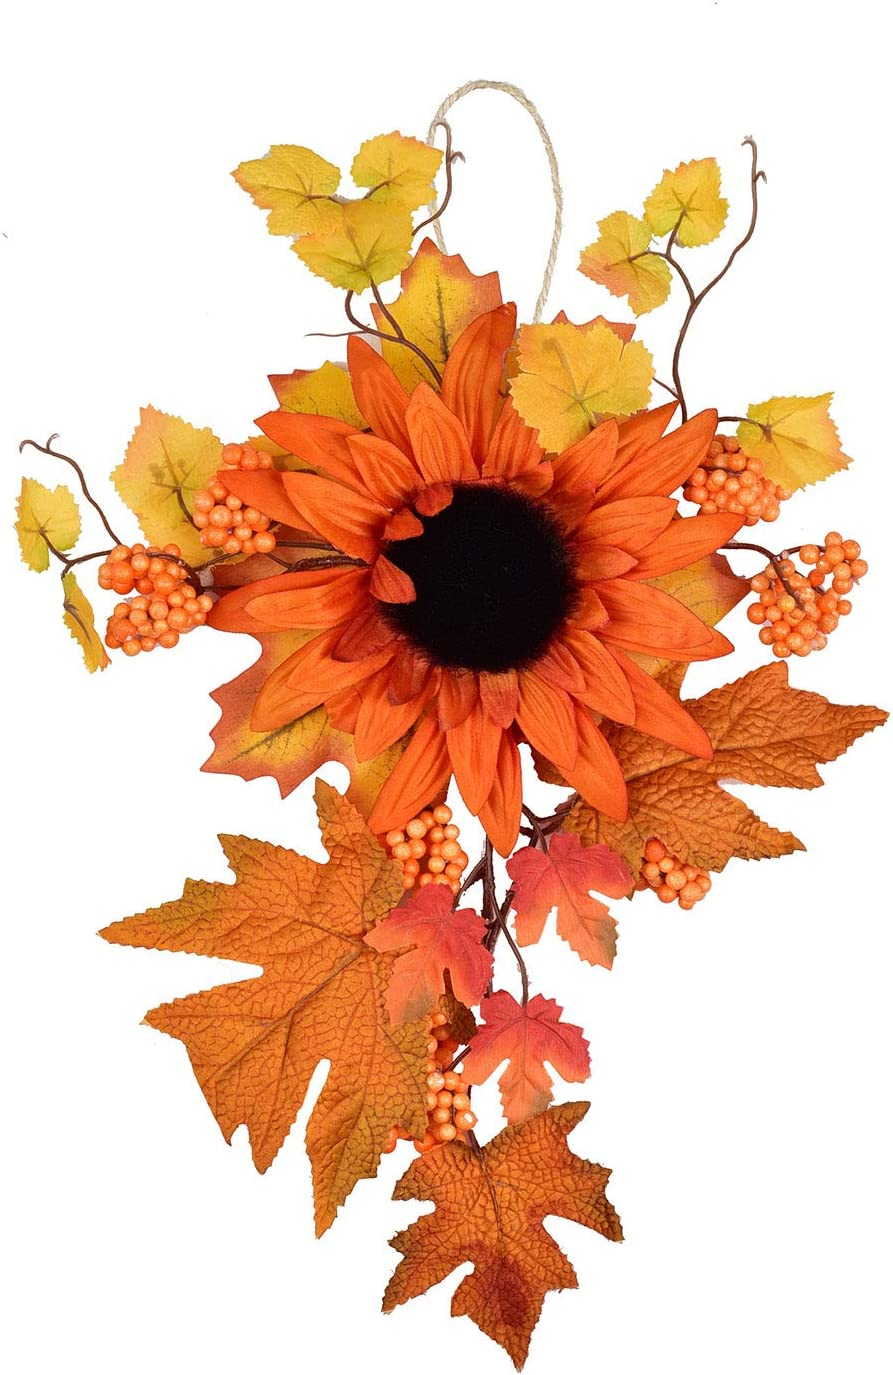 LSKYTOP Fall Harvest Swag - Autumn Decorative Swag with Sunflowers,Maple Leaves and Berries, Wreaths and Floral Decorations Front Door Wall Decor Holiday Ornaments (1)